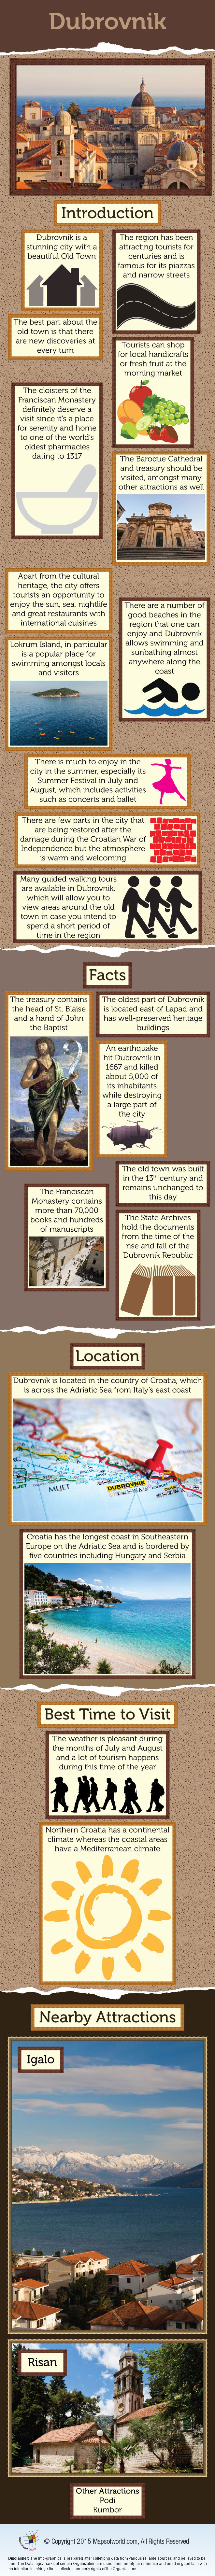 Infographic showing Facts and Information about Dubrovnik in Crotia